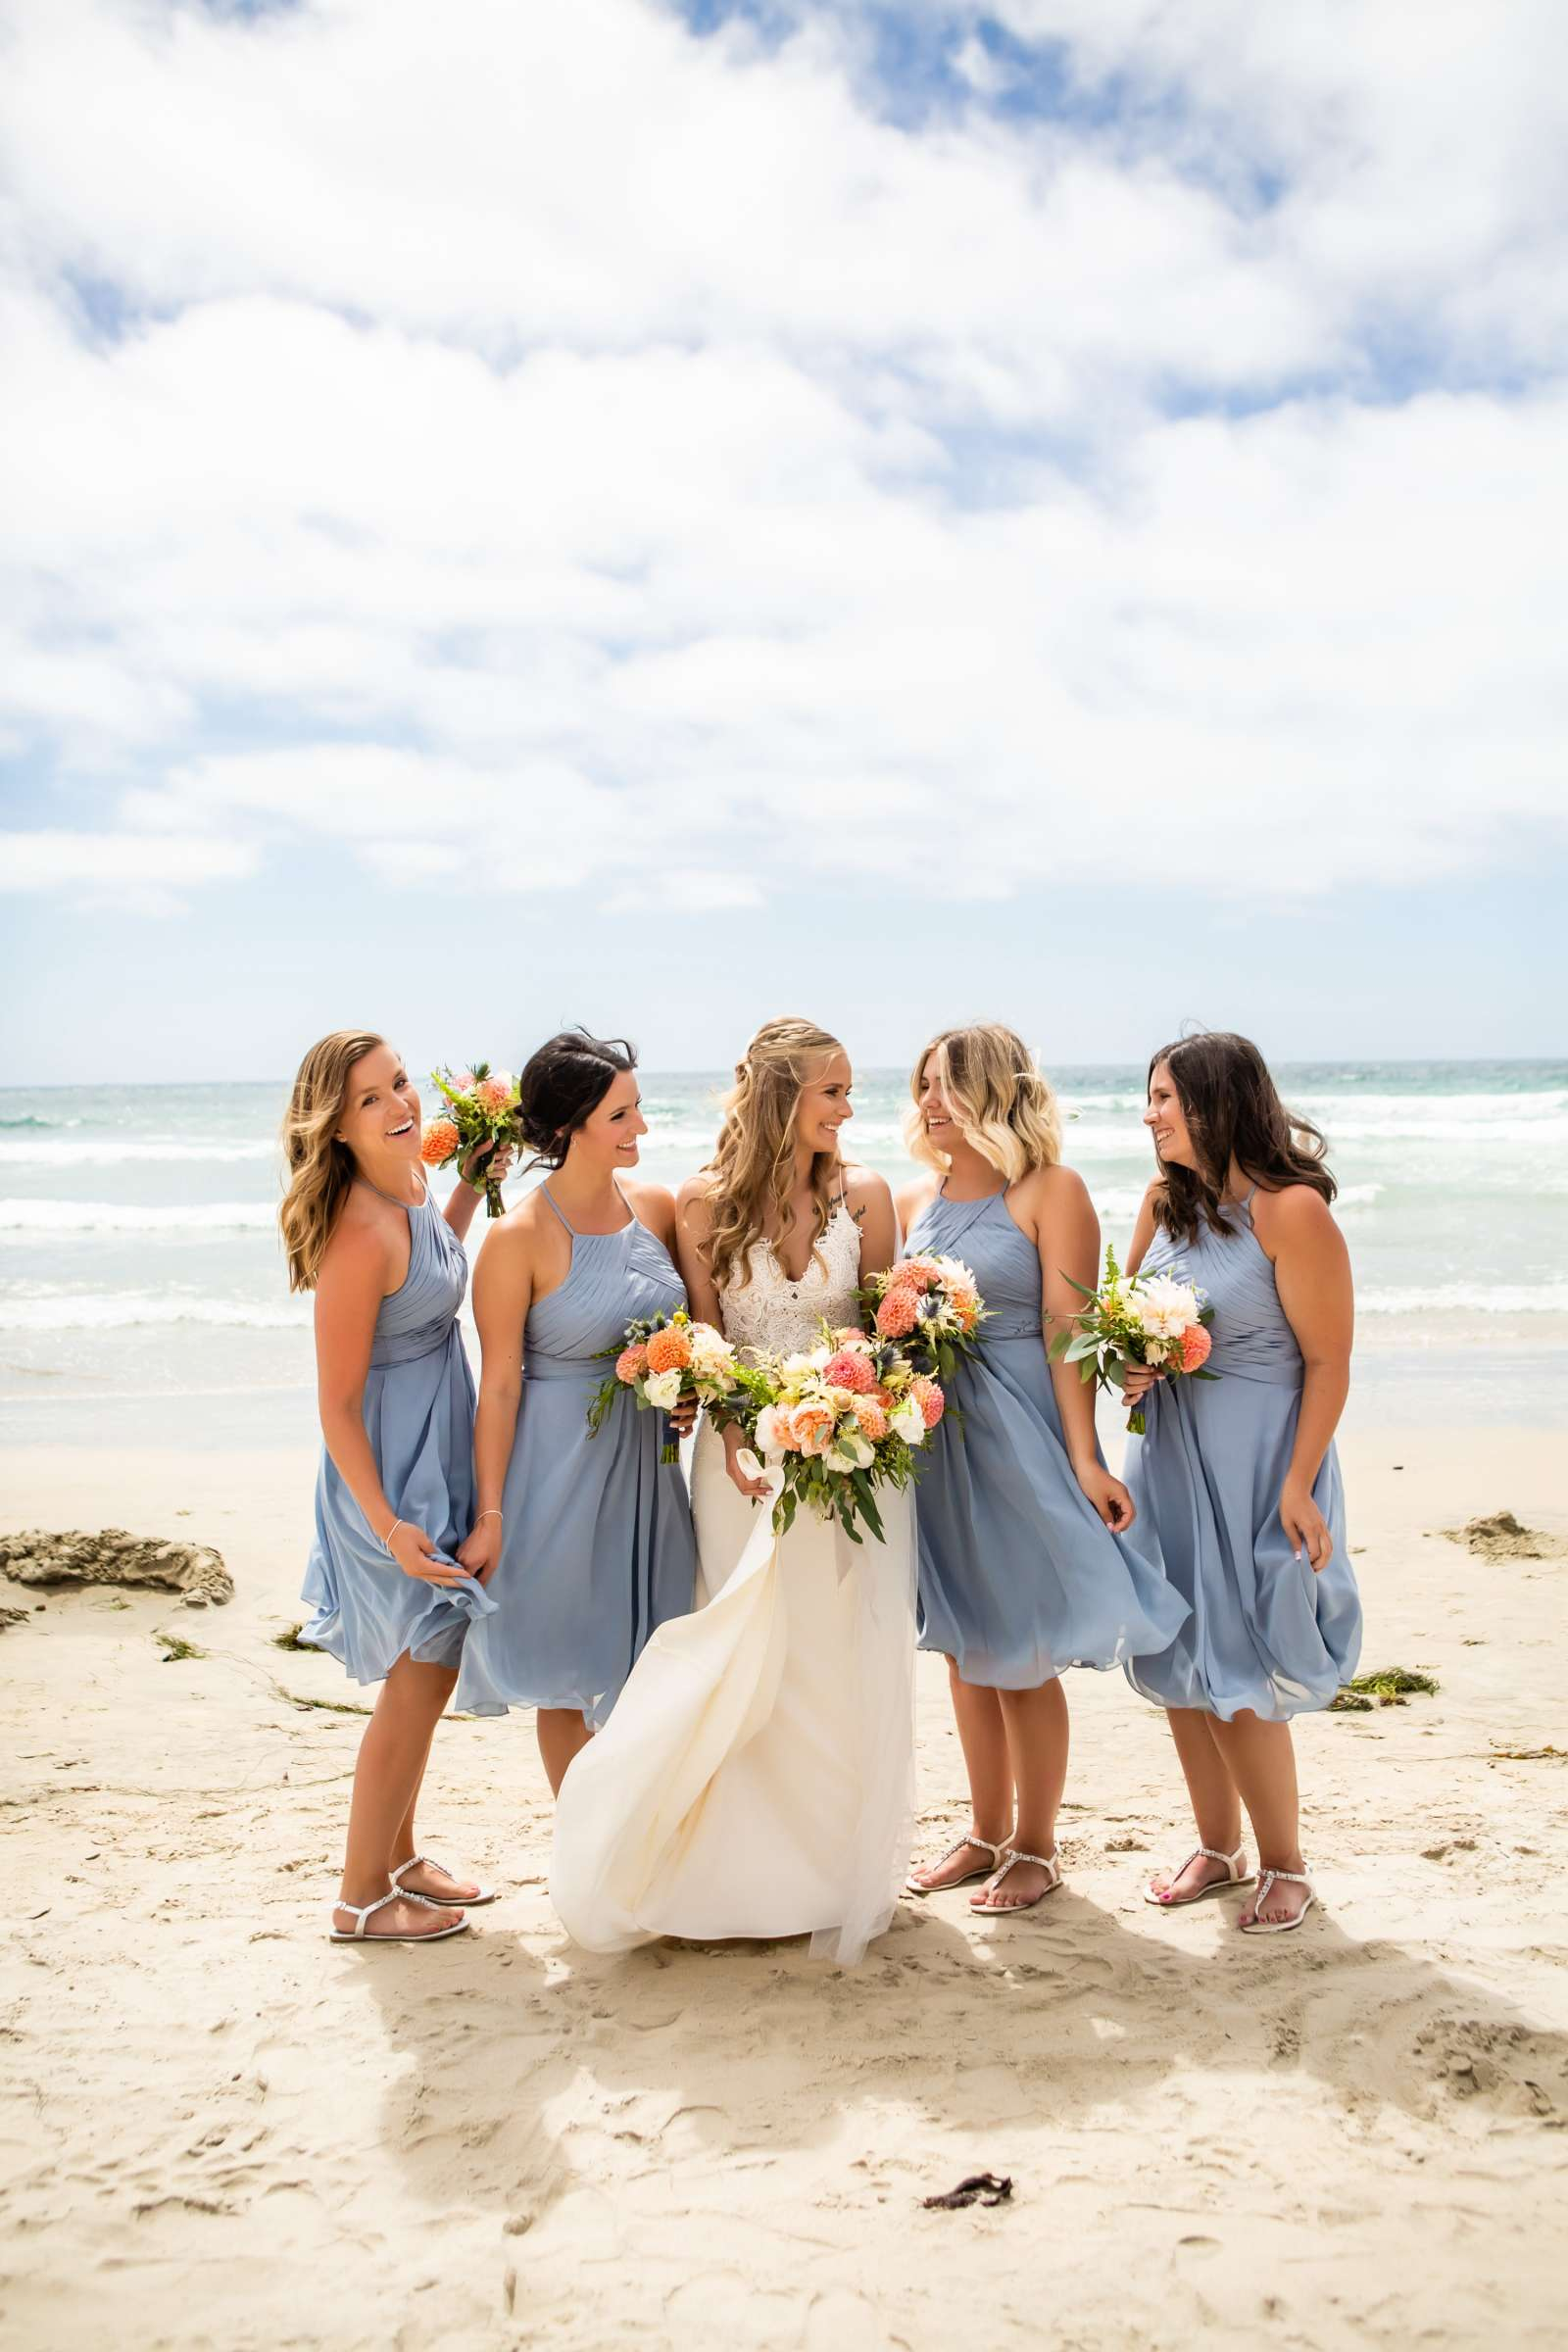 Scripps Seaside Forum Wedding coordinated by The Best Wedding For You, Jessica and Cameron Wedding Photo #19 by True Photography